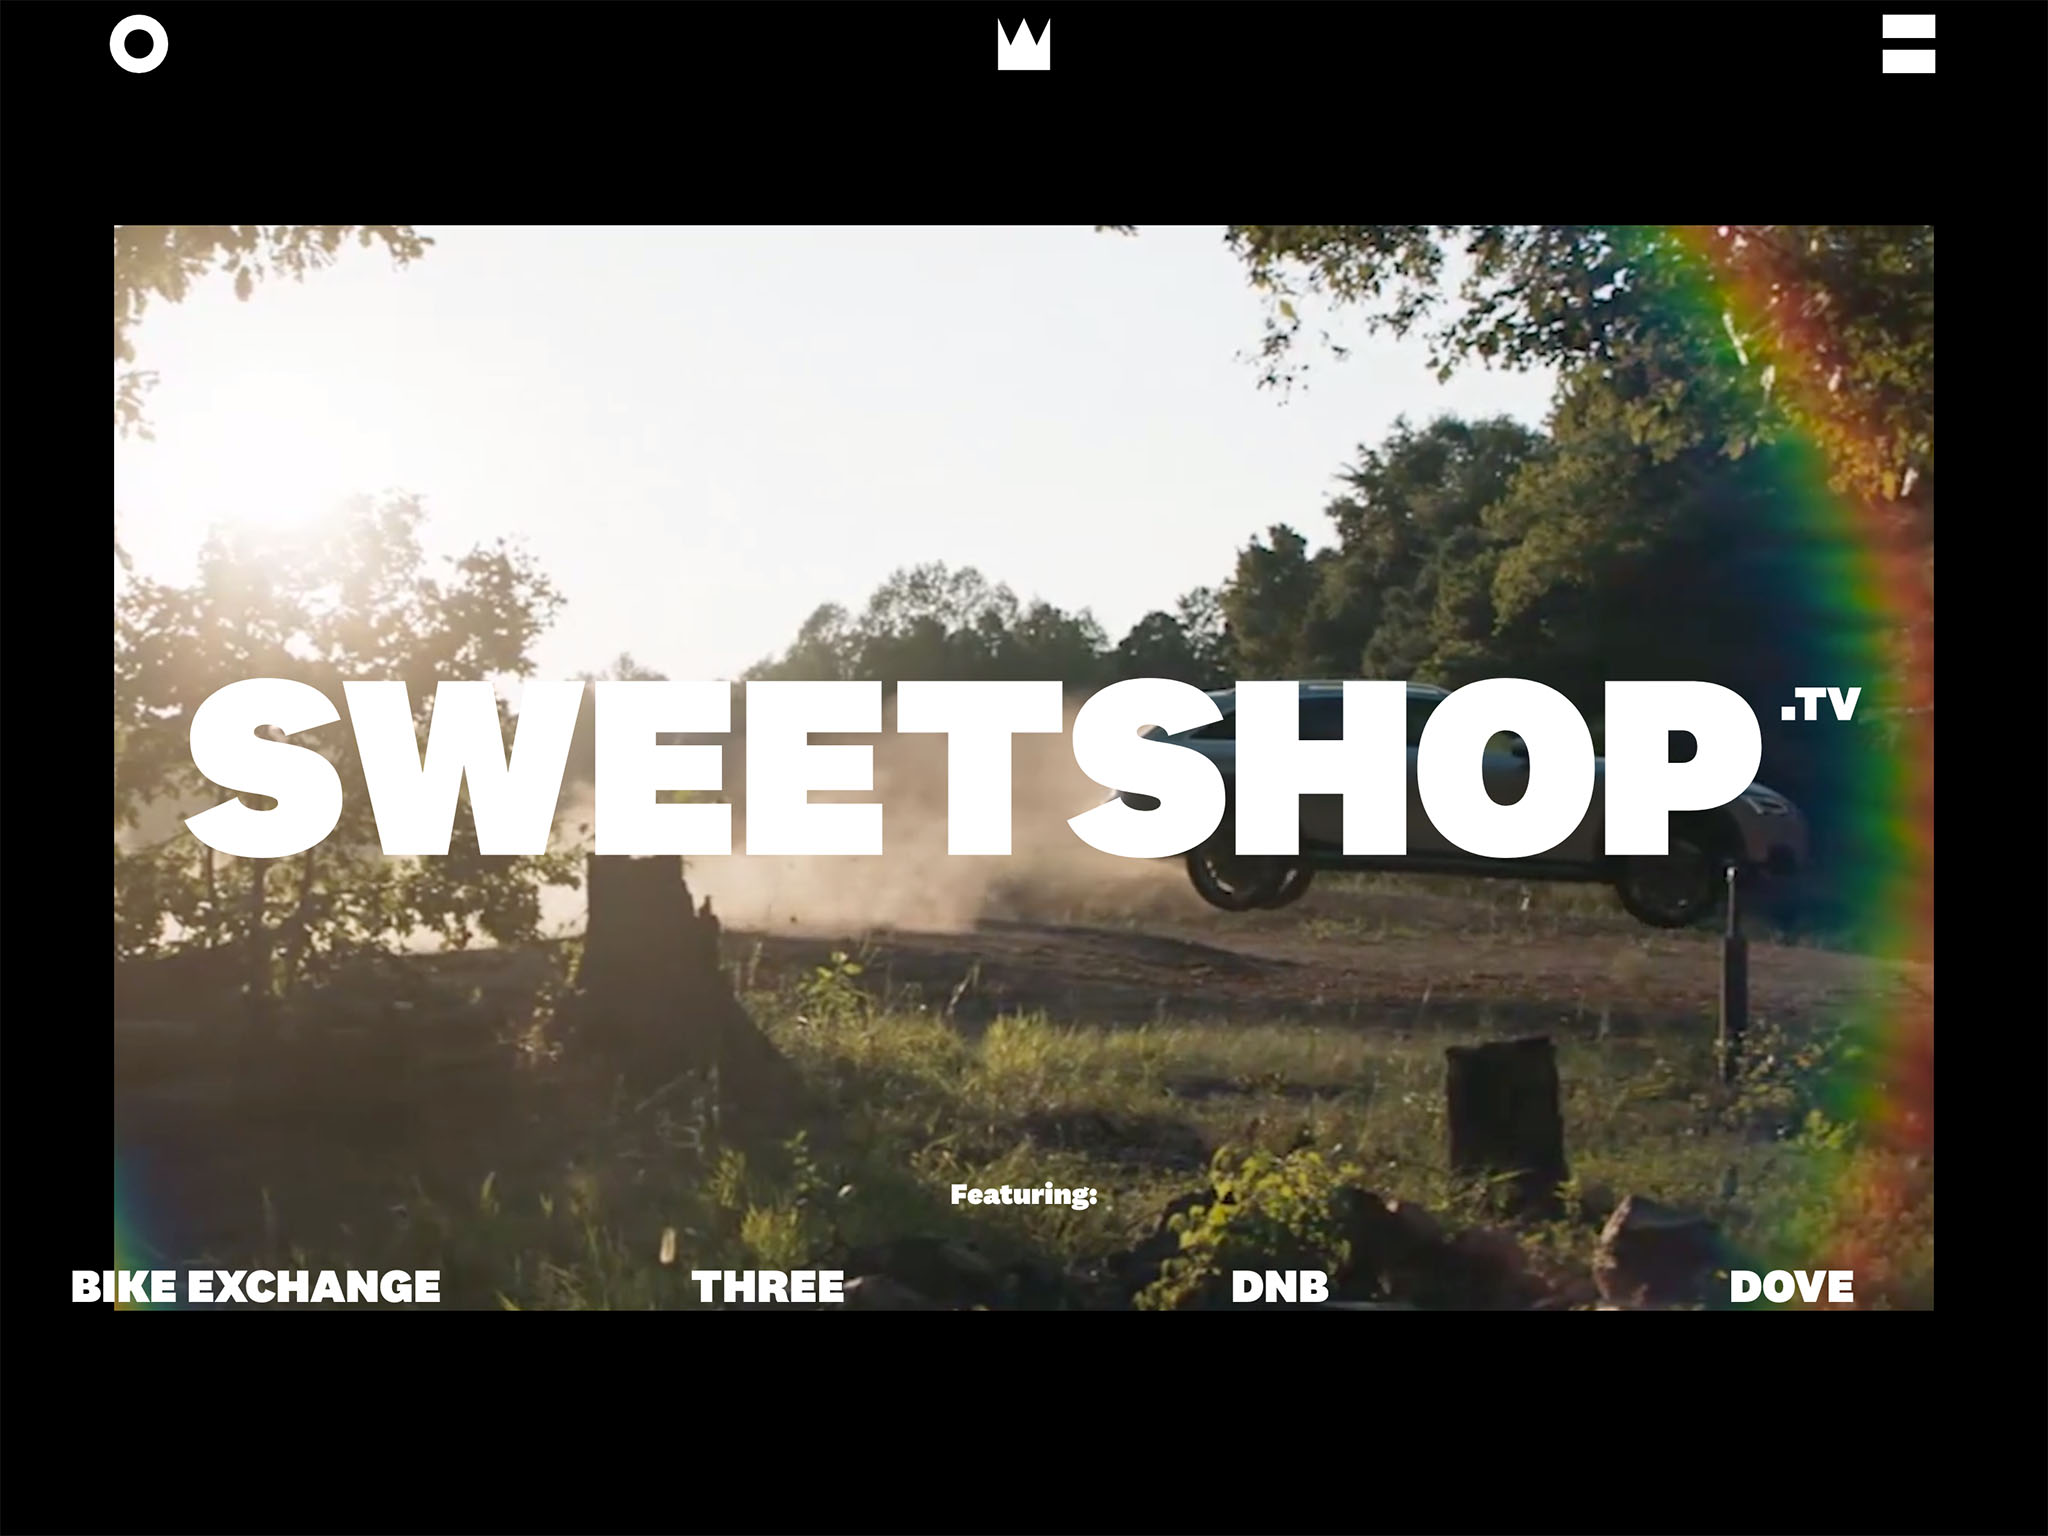 Home — The Sweetshop